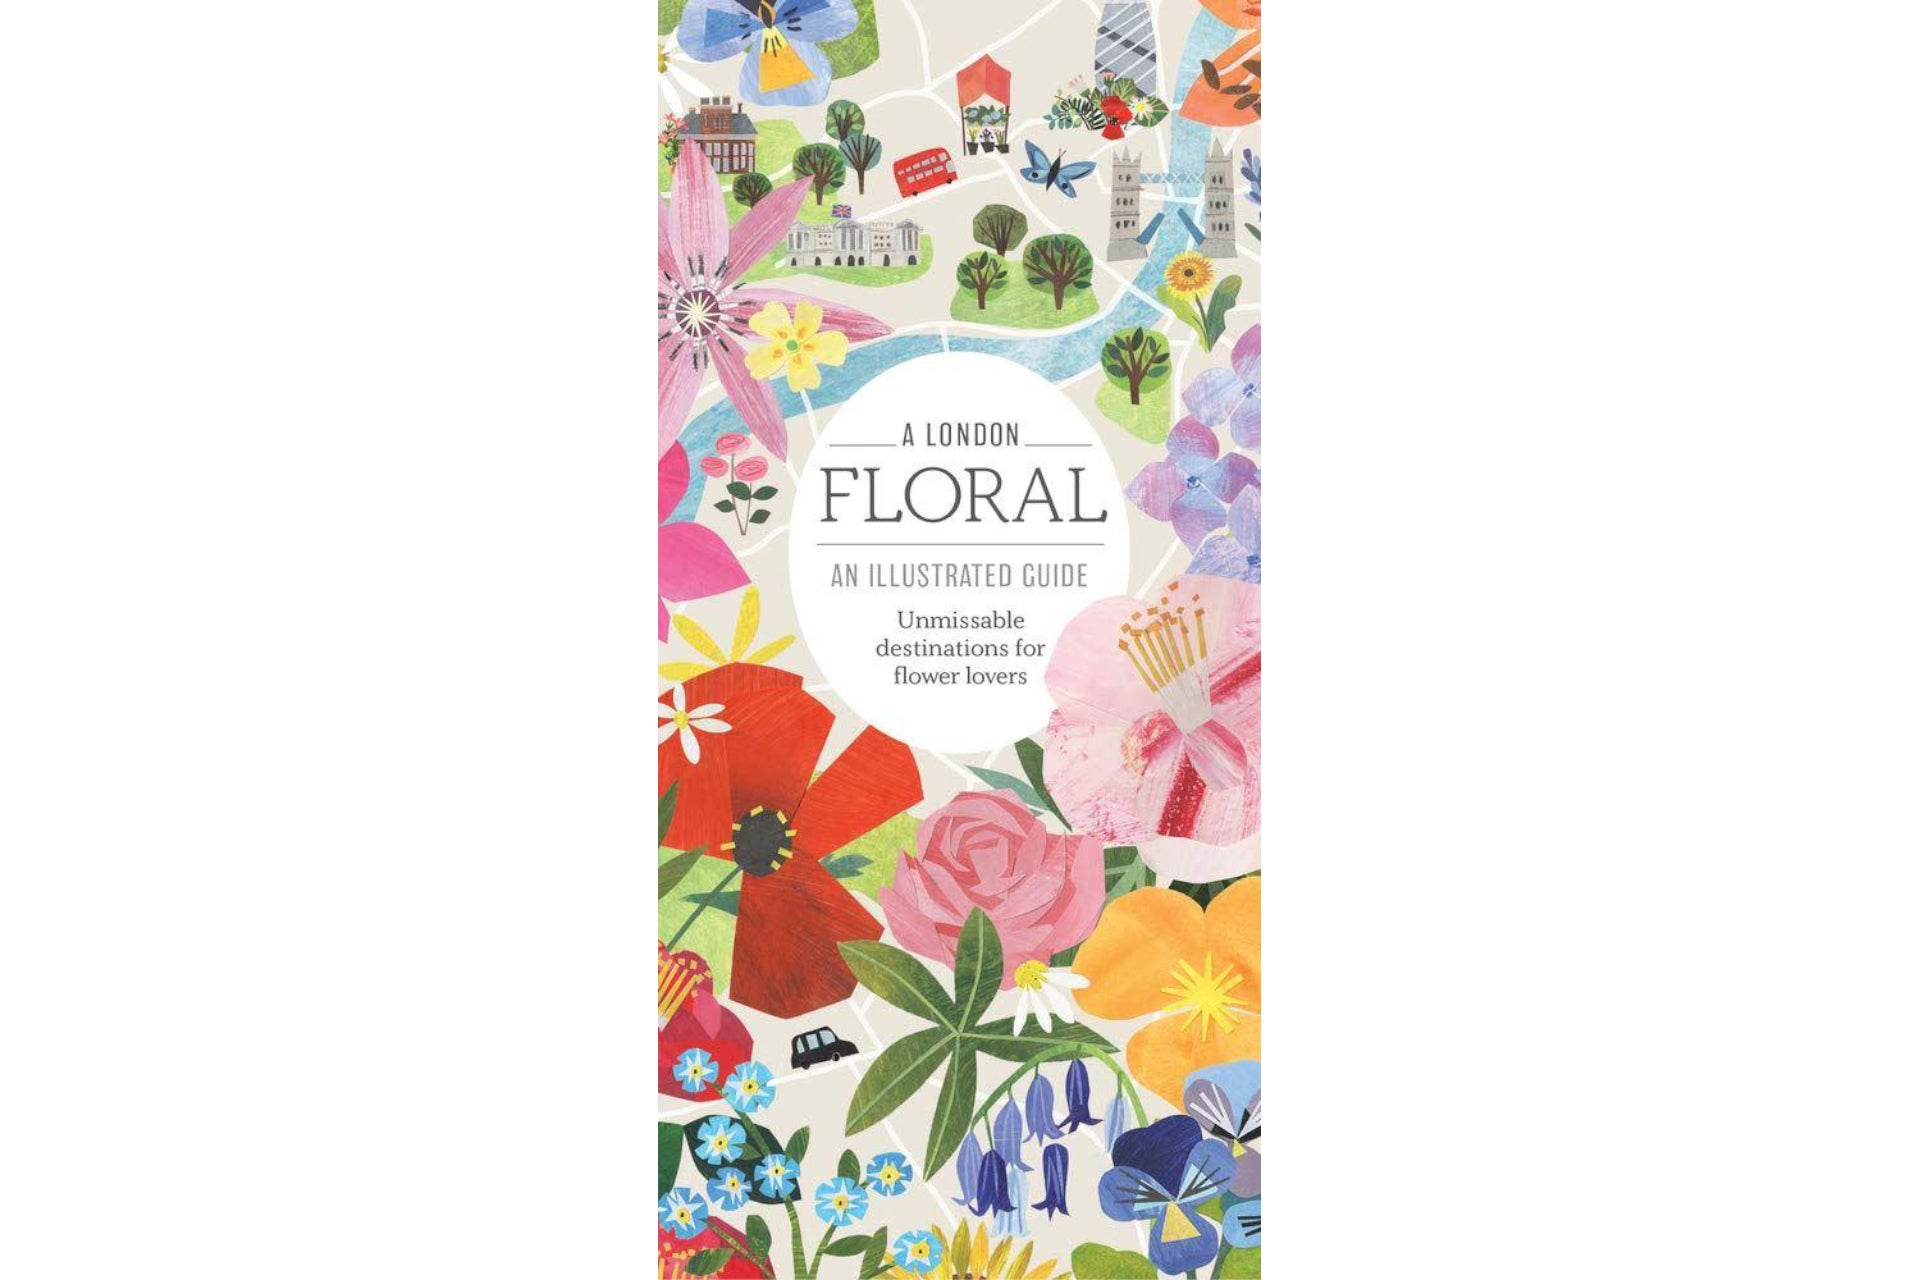 A London Floral - An illustrated guide for flower lovers